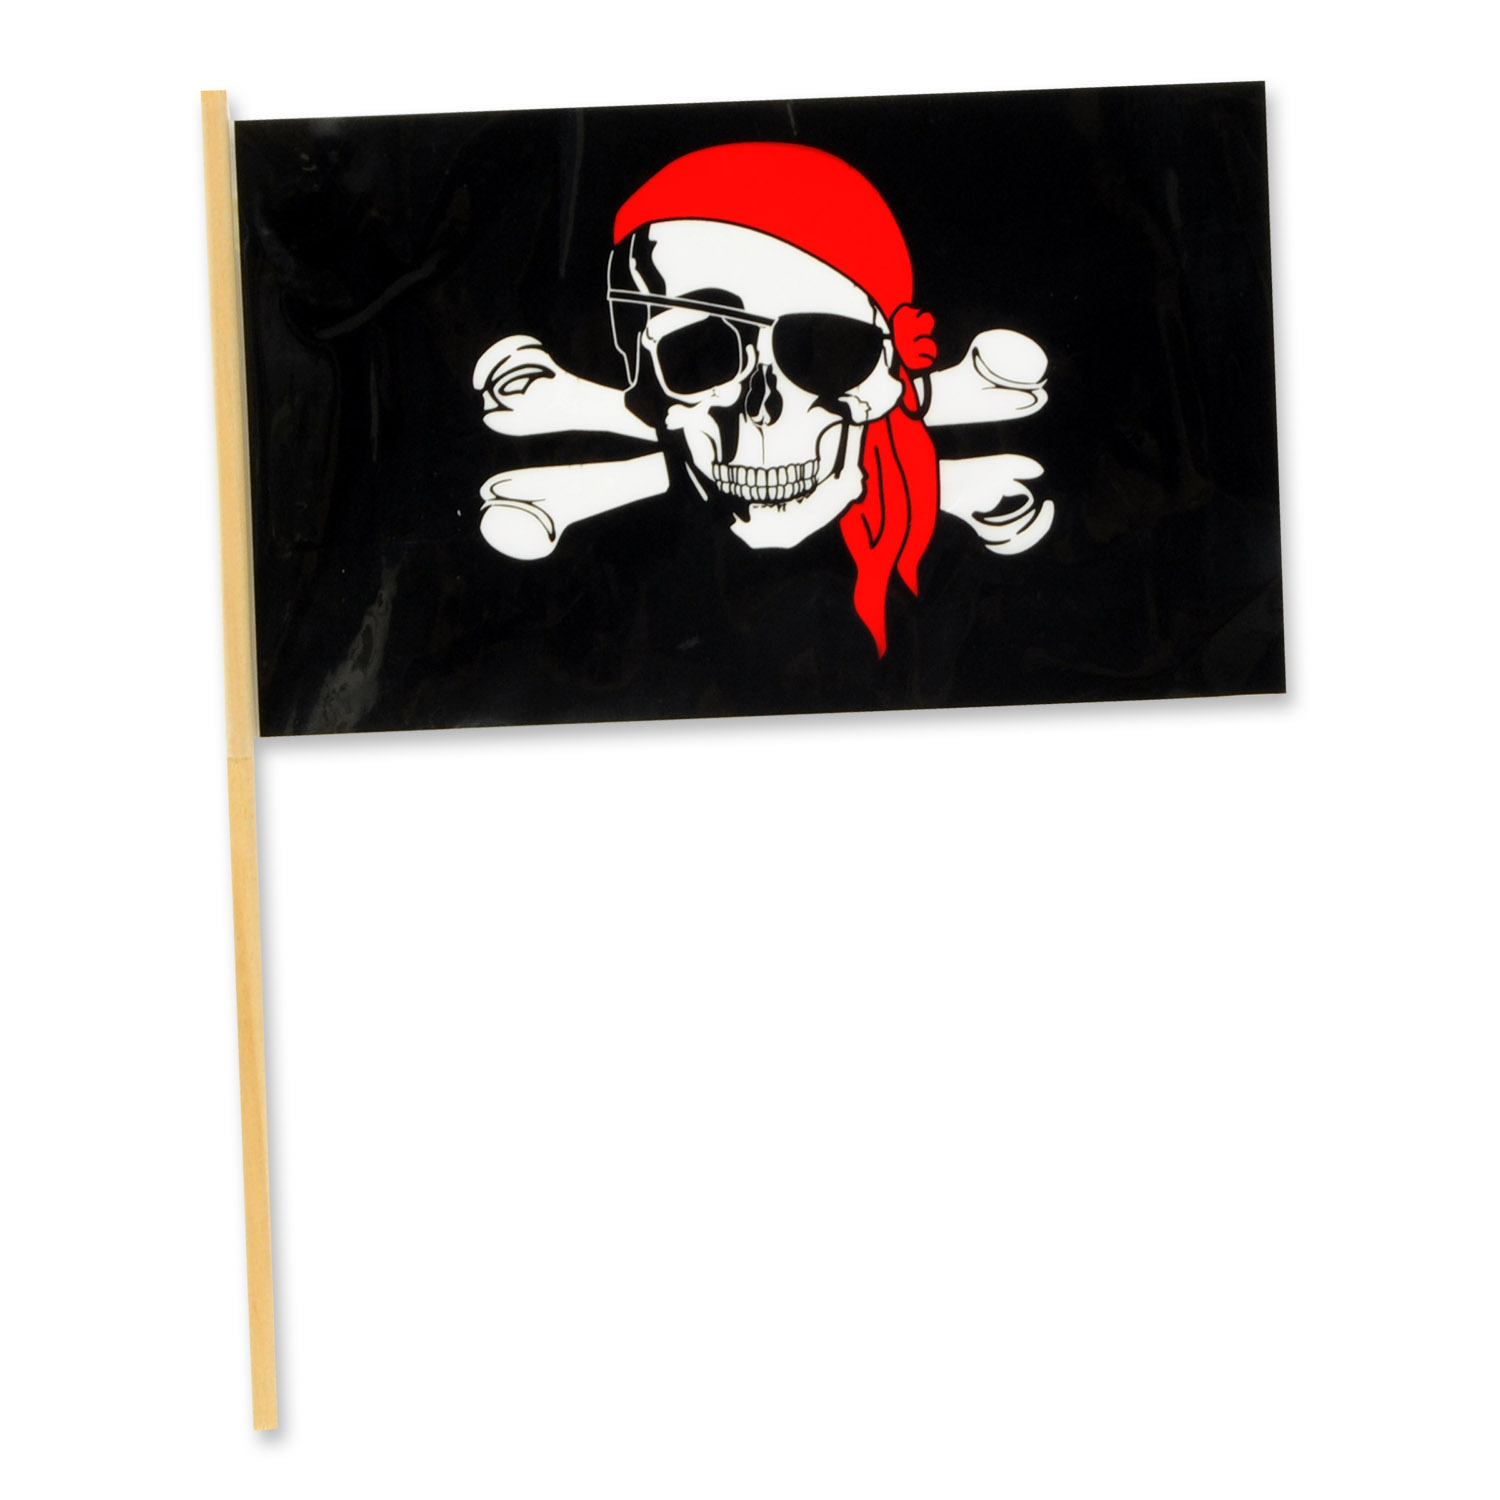 Pirate Flag - Plastic (Pack of 144) Pirate, flags, pirate flags, skull and bones, pirate skull